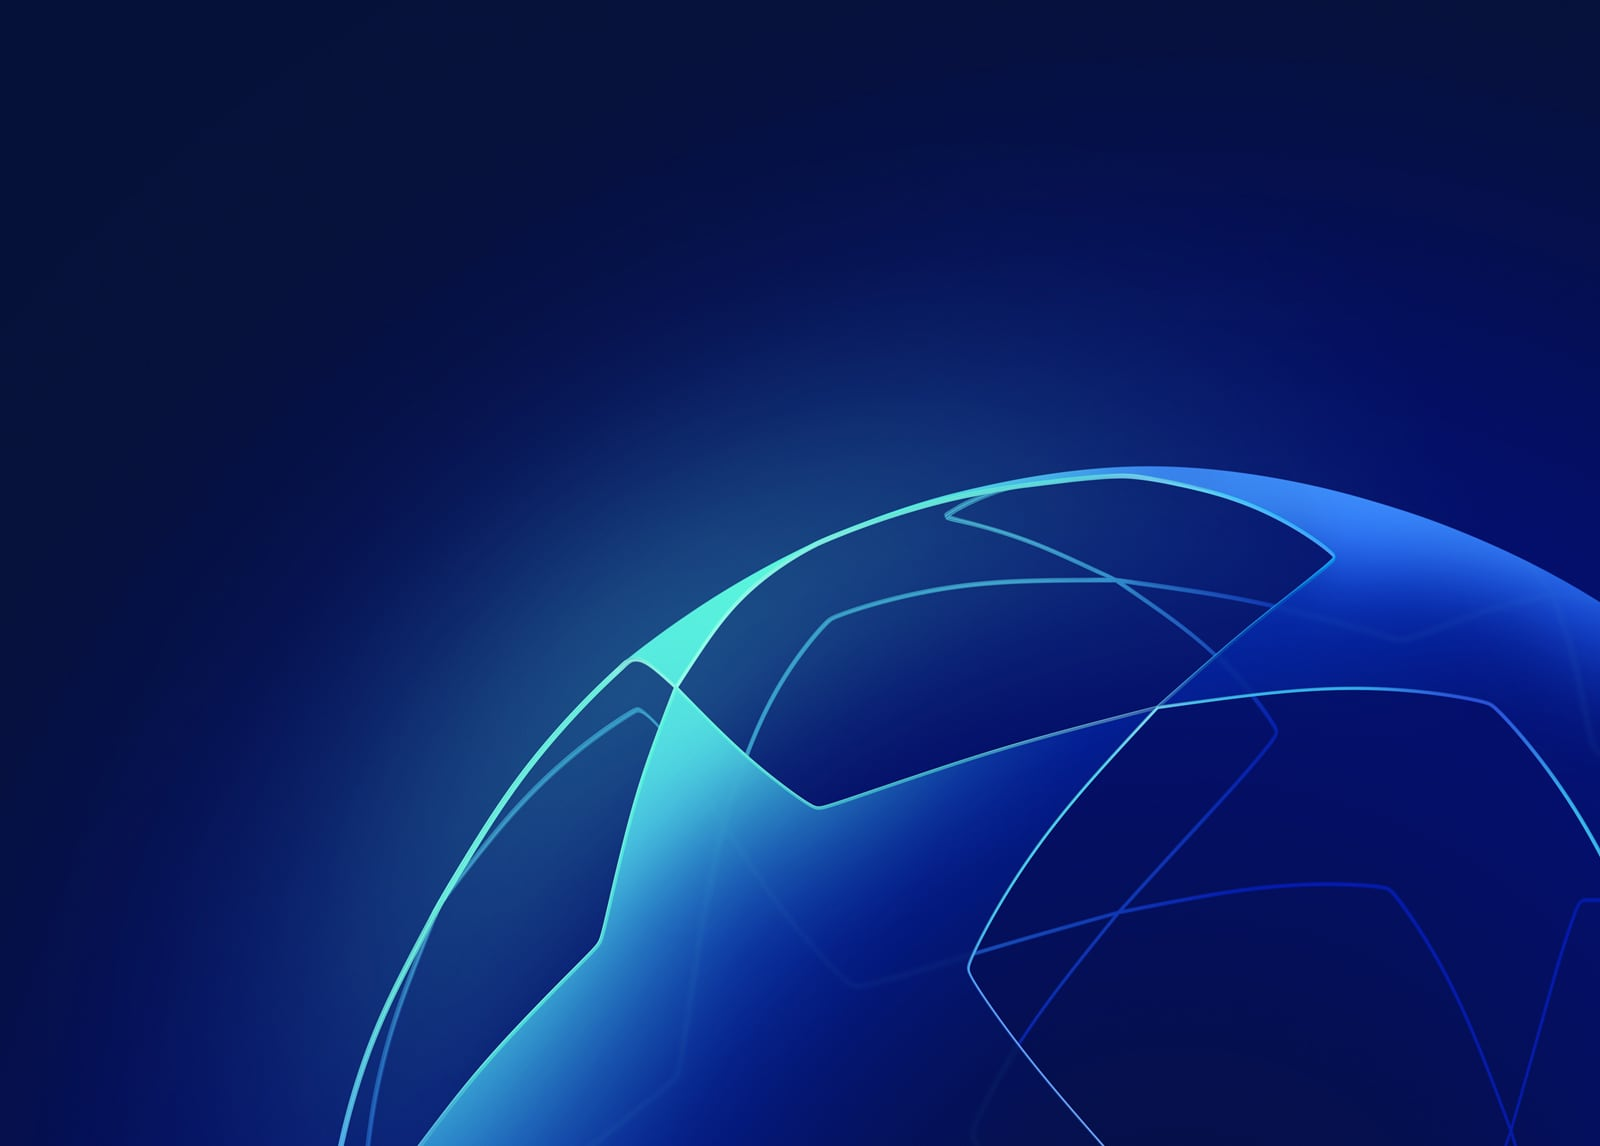 UEFA Champions League: New UEFA Champions League Branding 2018